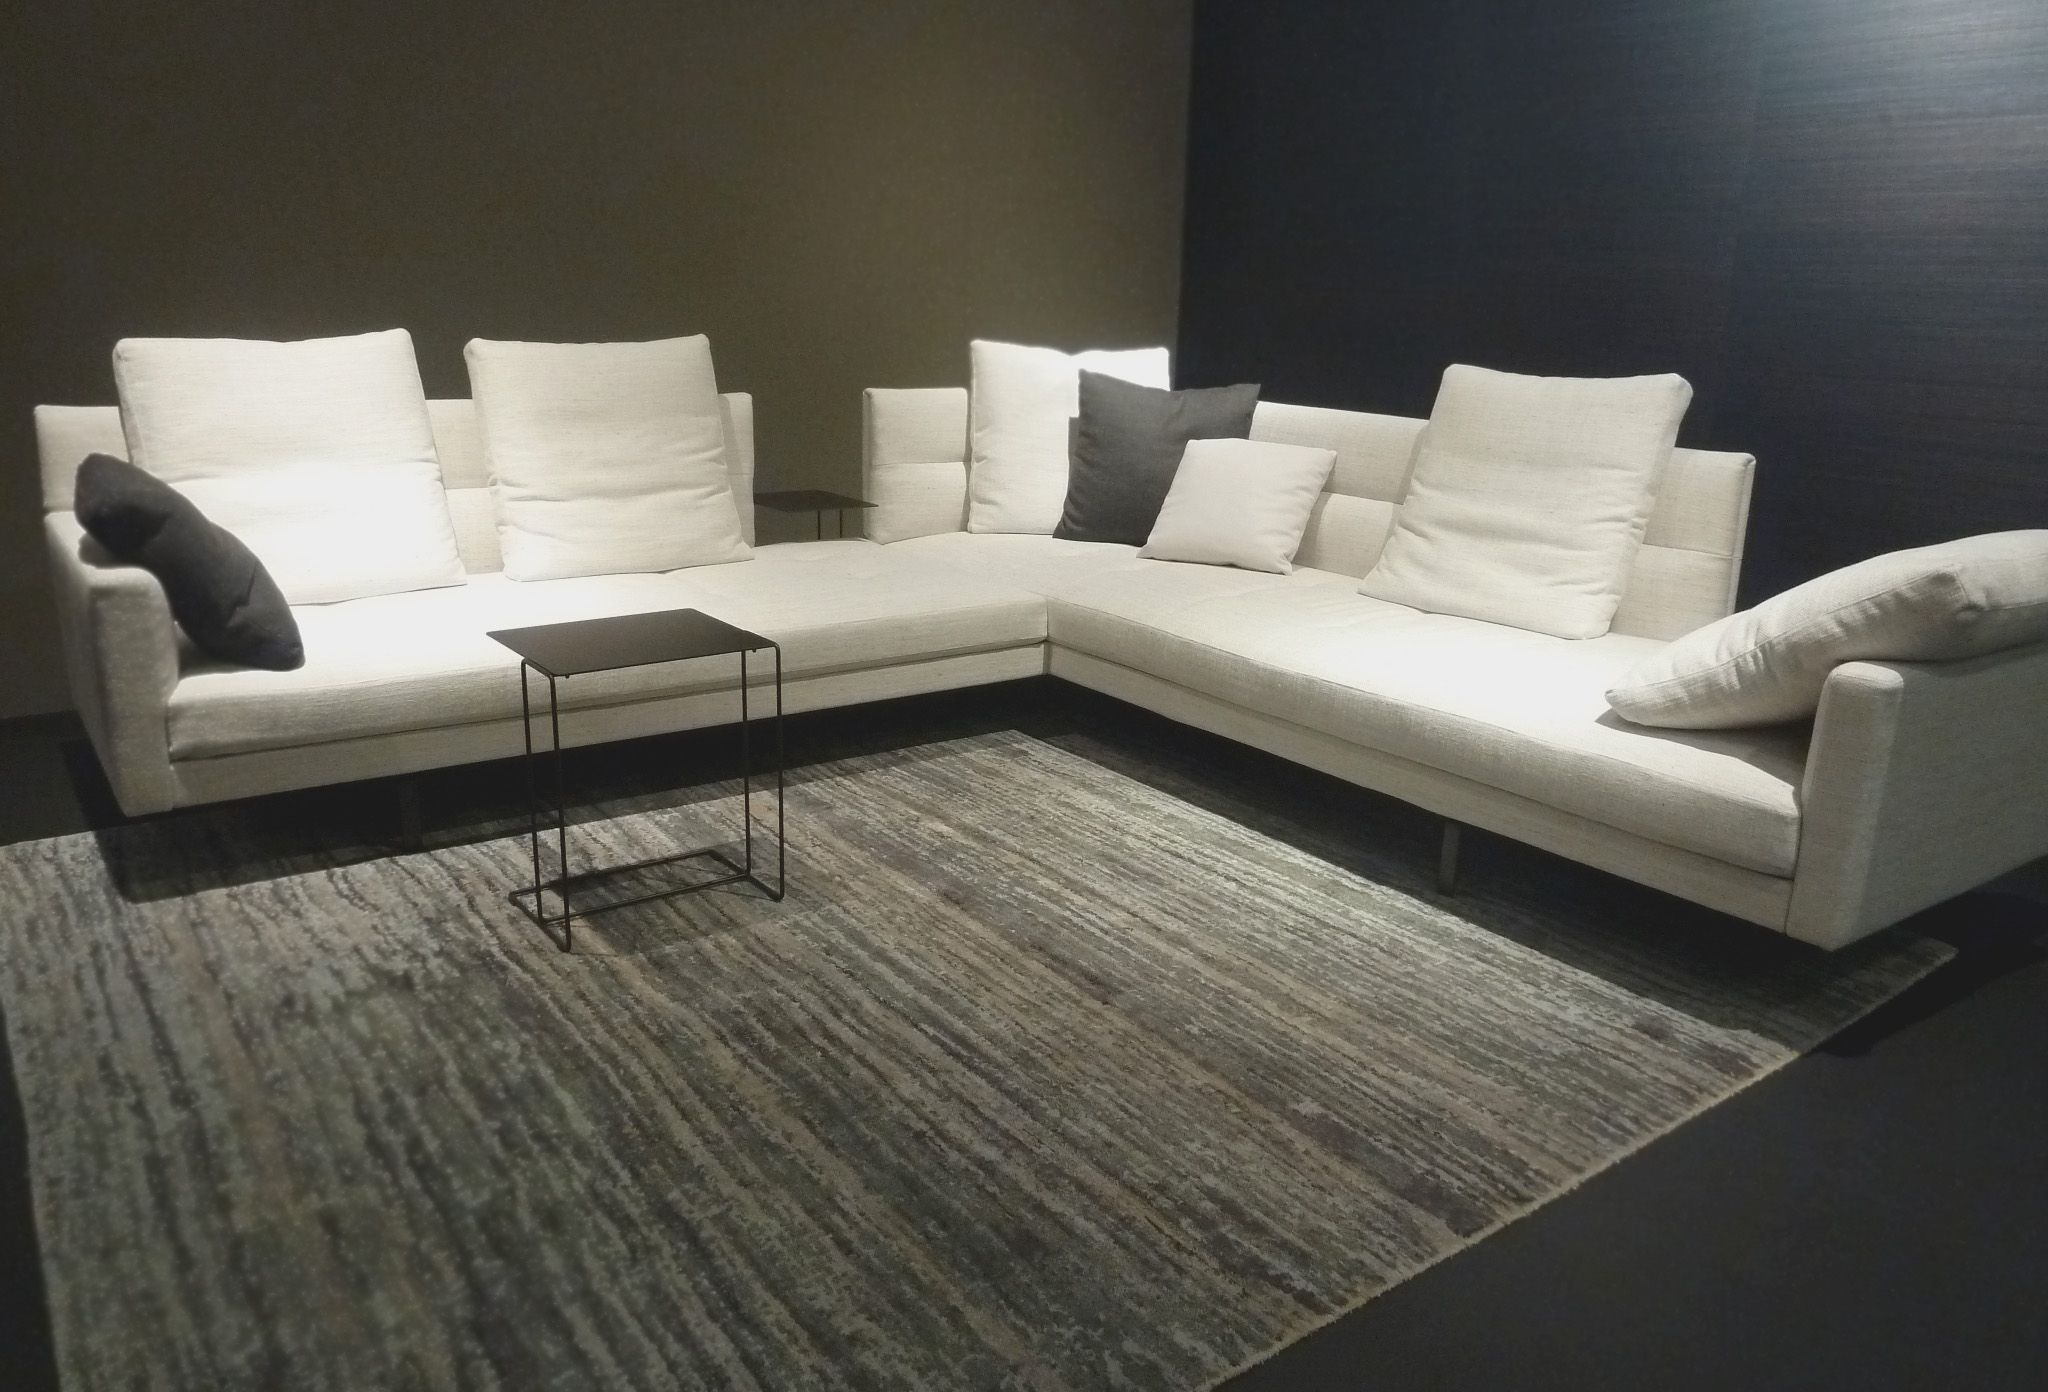 Scp contracts at cologne gordon sofa eoos for walter knoll scp contracts at cologne gordon sofa eoos for walter knoll parisarafo Gallery